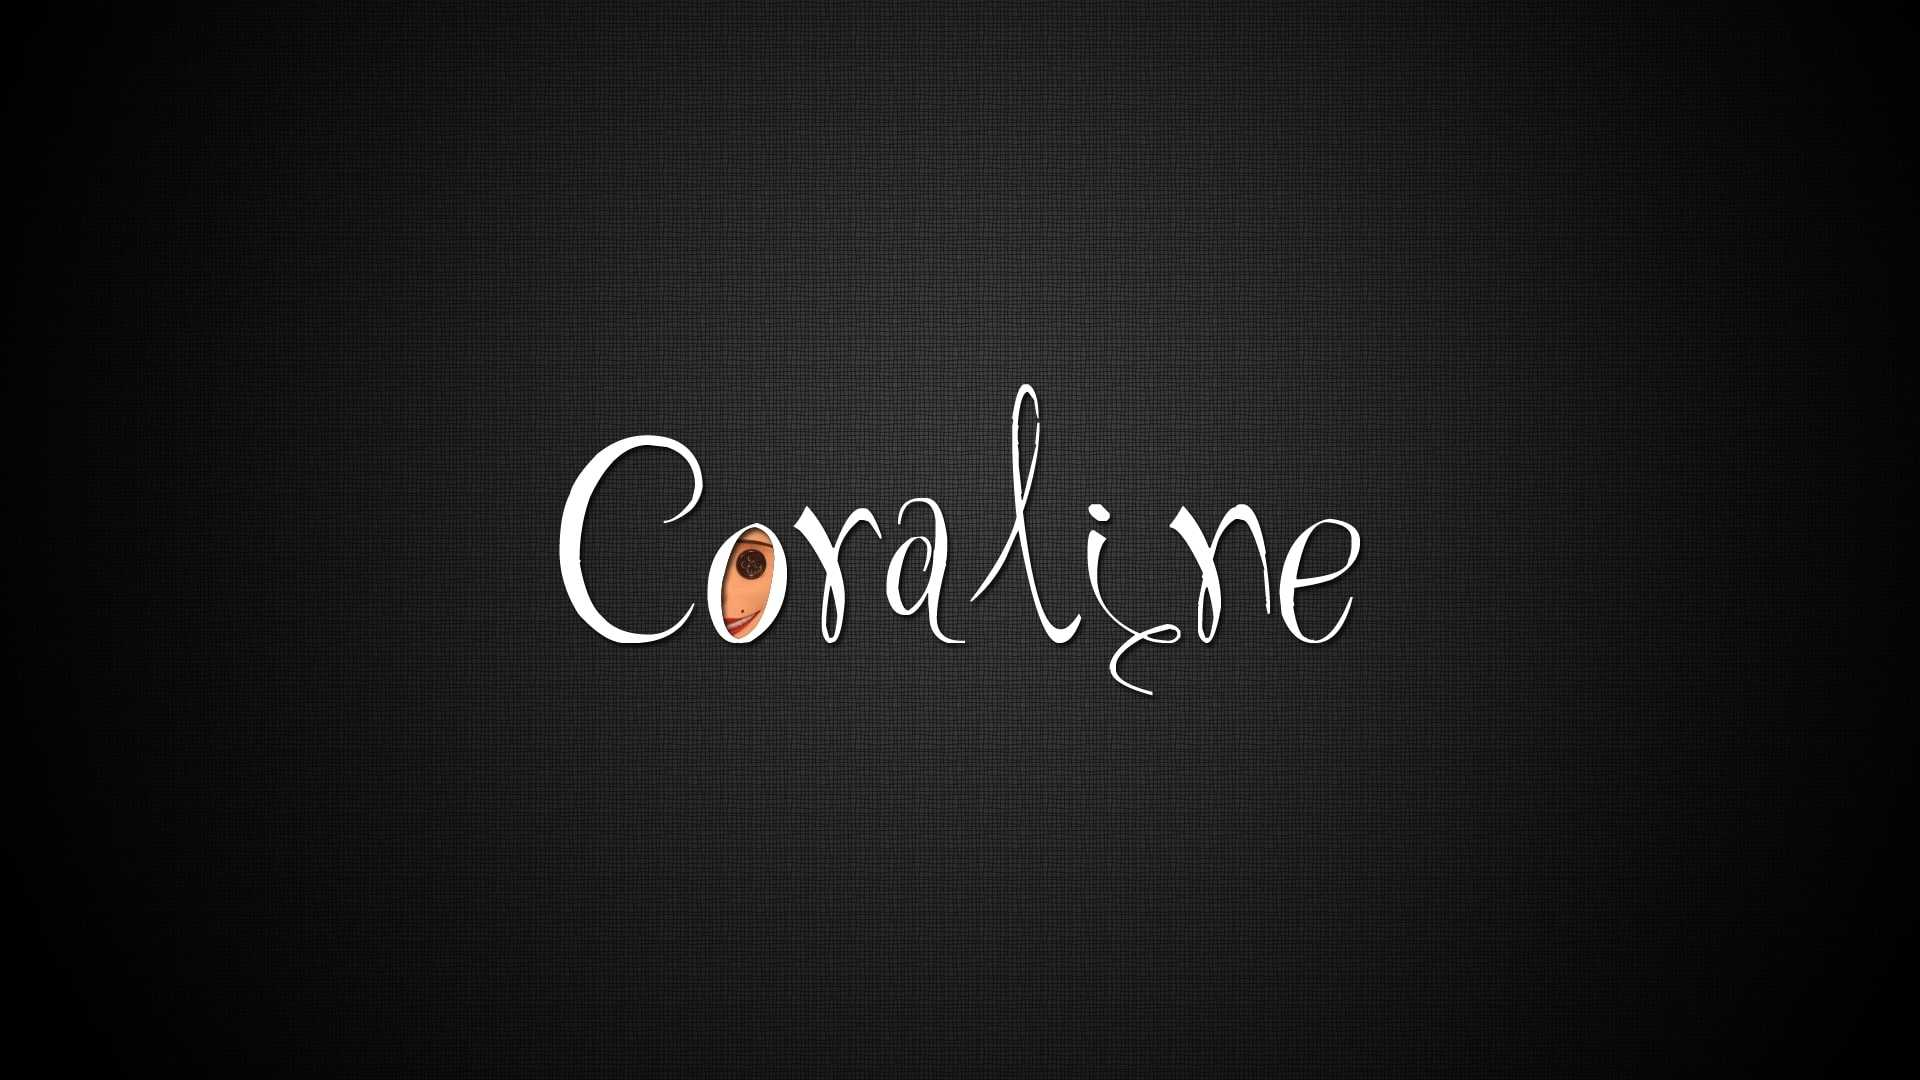 HD Coraline Wallpaper 1